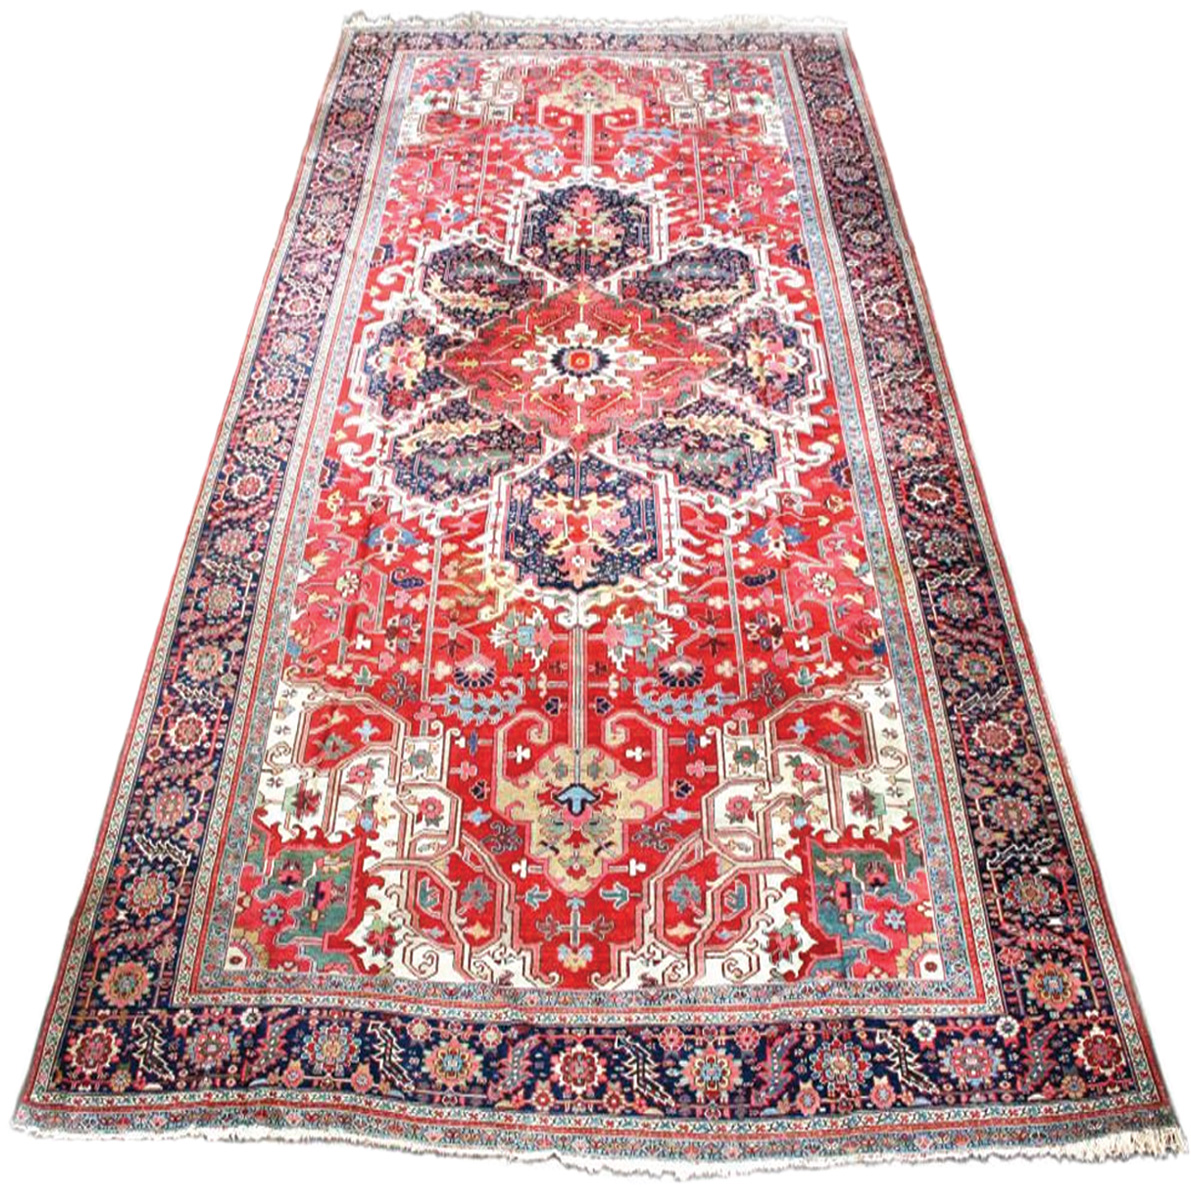 Rugs Amp Textiles Mark Lawson Antiques